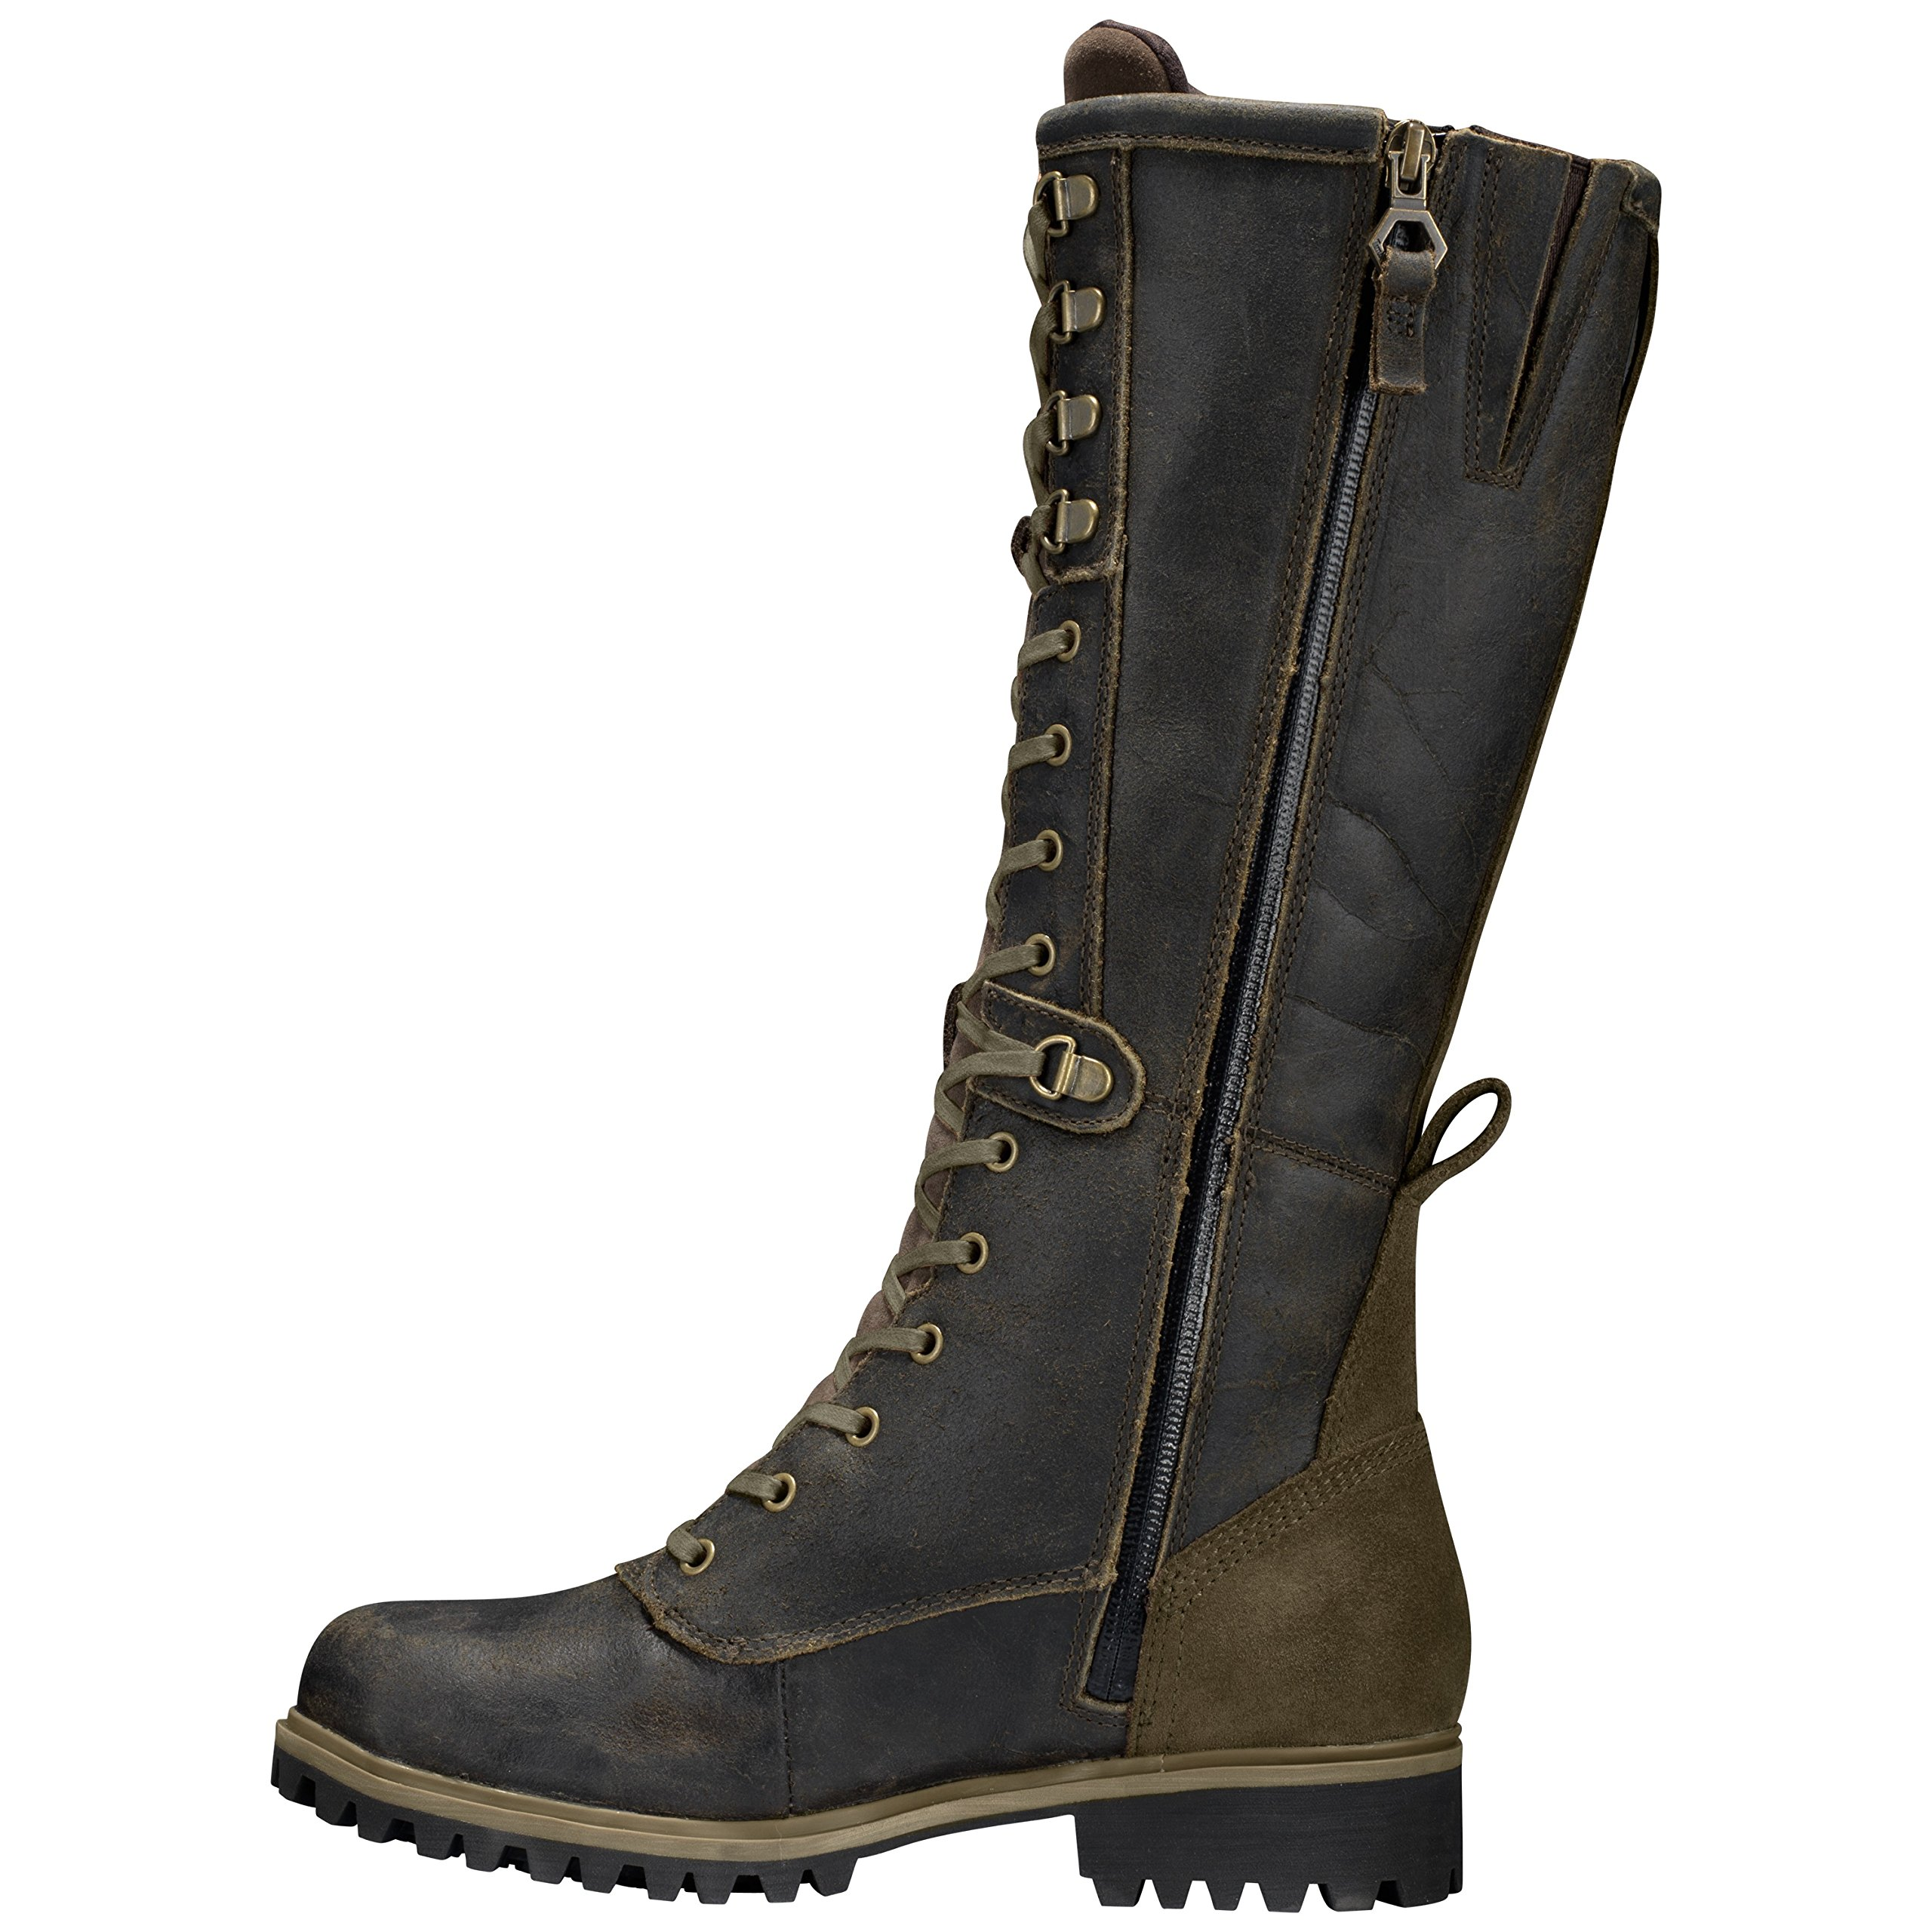 Timberland Women's Wheelwright Tall Lace Waterproof Boot 9 US M Dark Brown Suede by Timberland (Image #6)